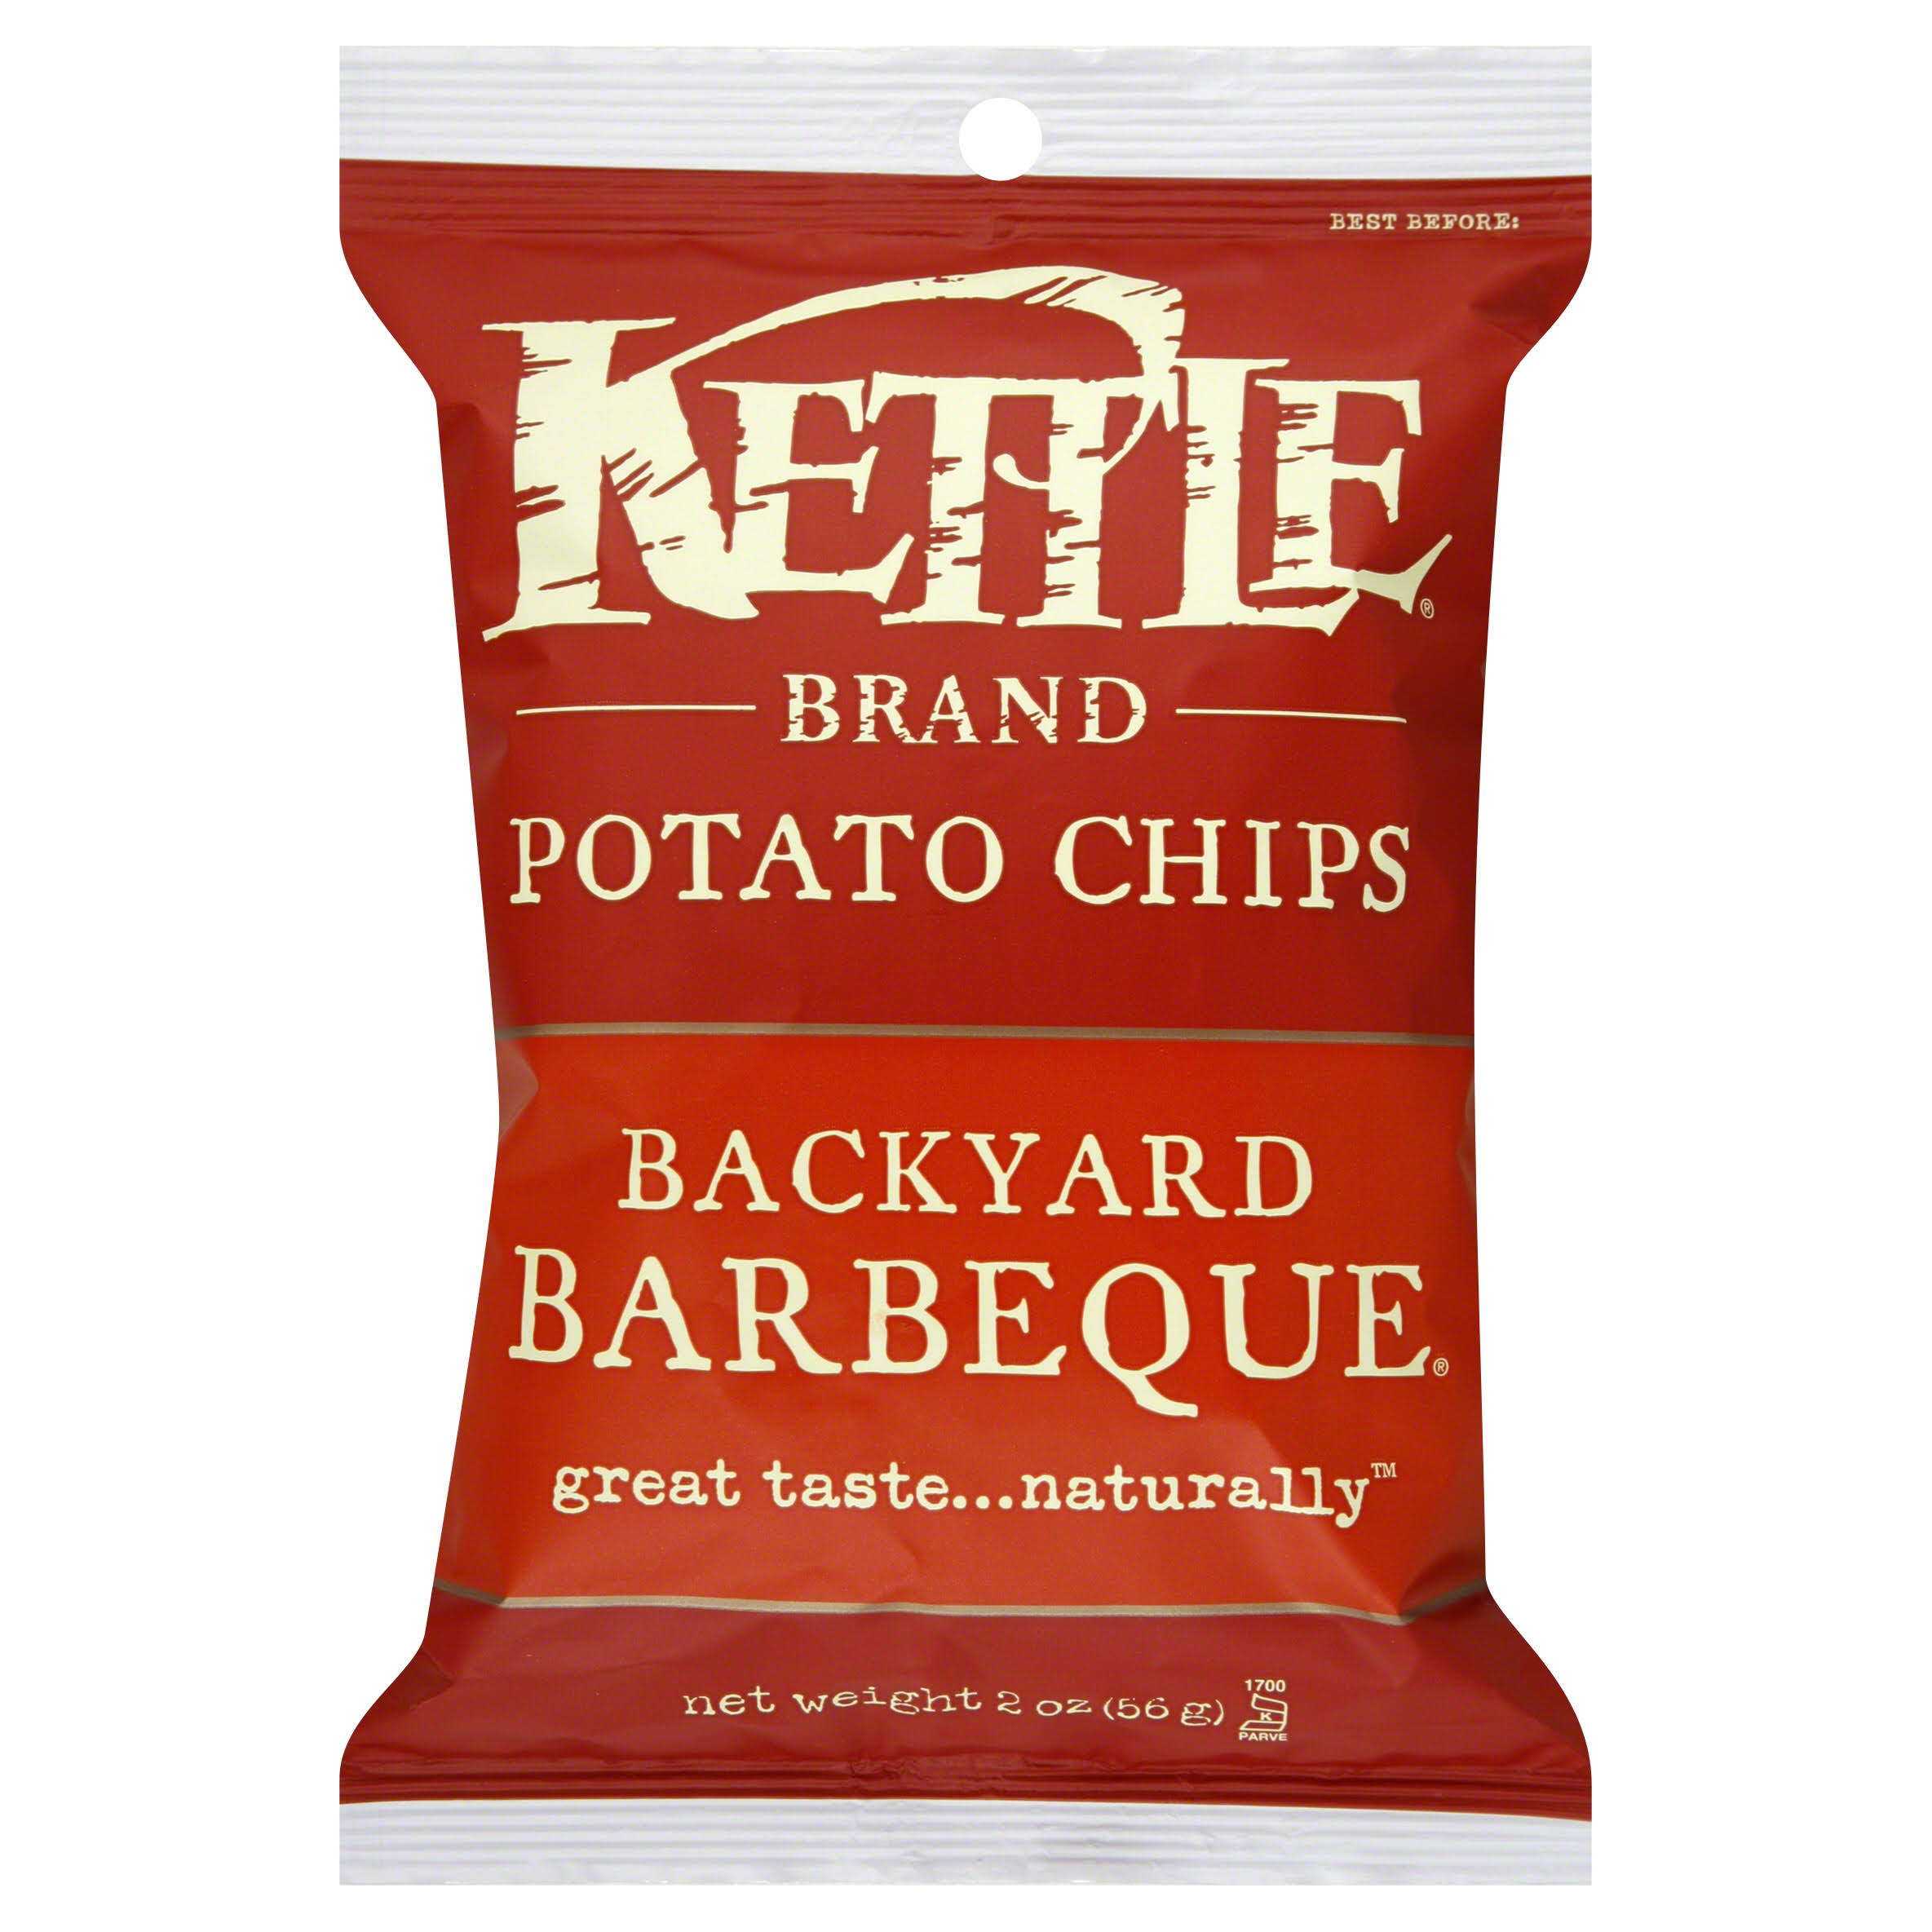 Kettle Brand Potato Chips - Backyard Barbeque, 2oz